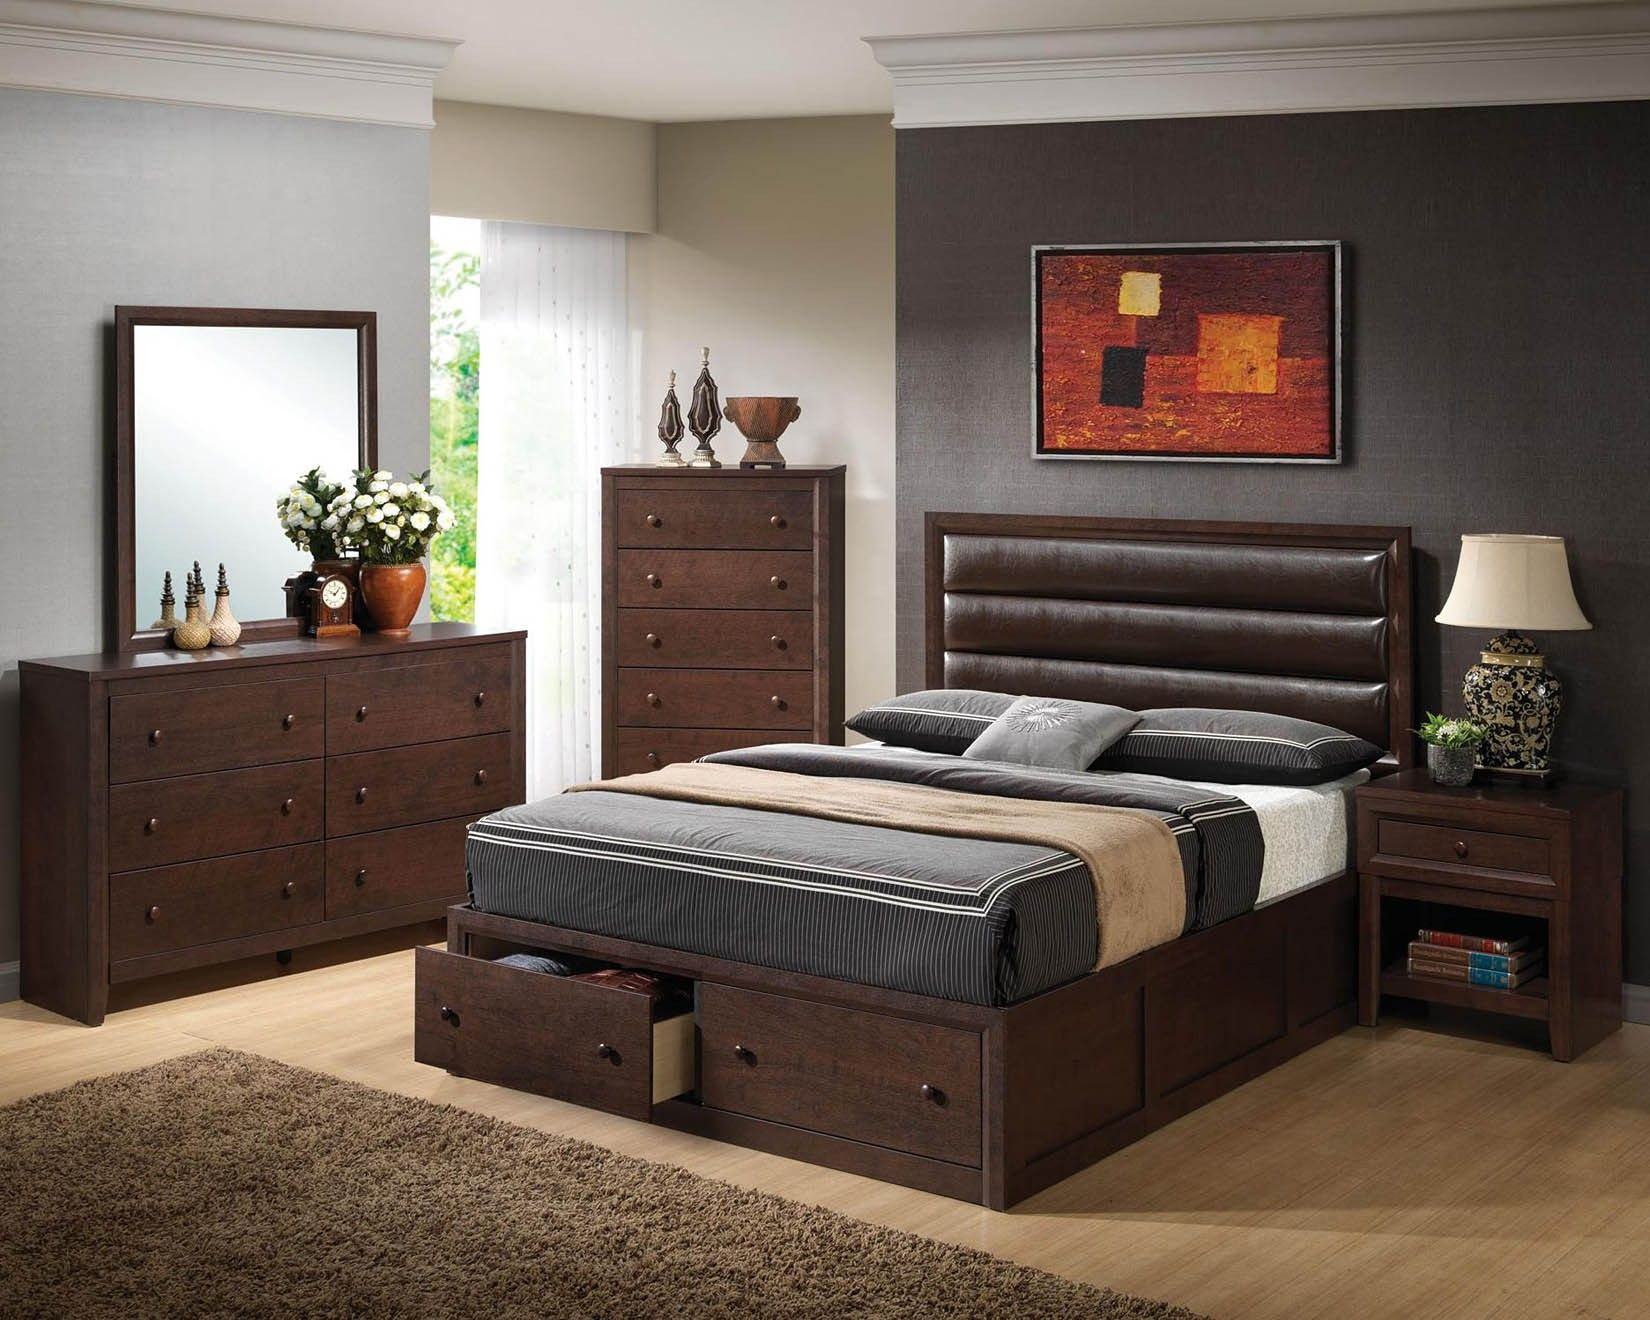 brown leather bedroom furniture. terrific black wooden bedroom furniture set and modern leather upholstered headboard also square vanity mirror excellent bed headboards serve as nice piece brown l